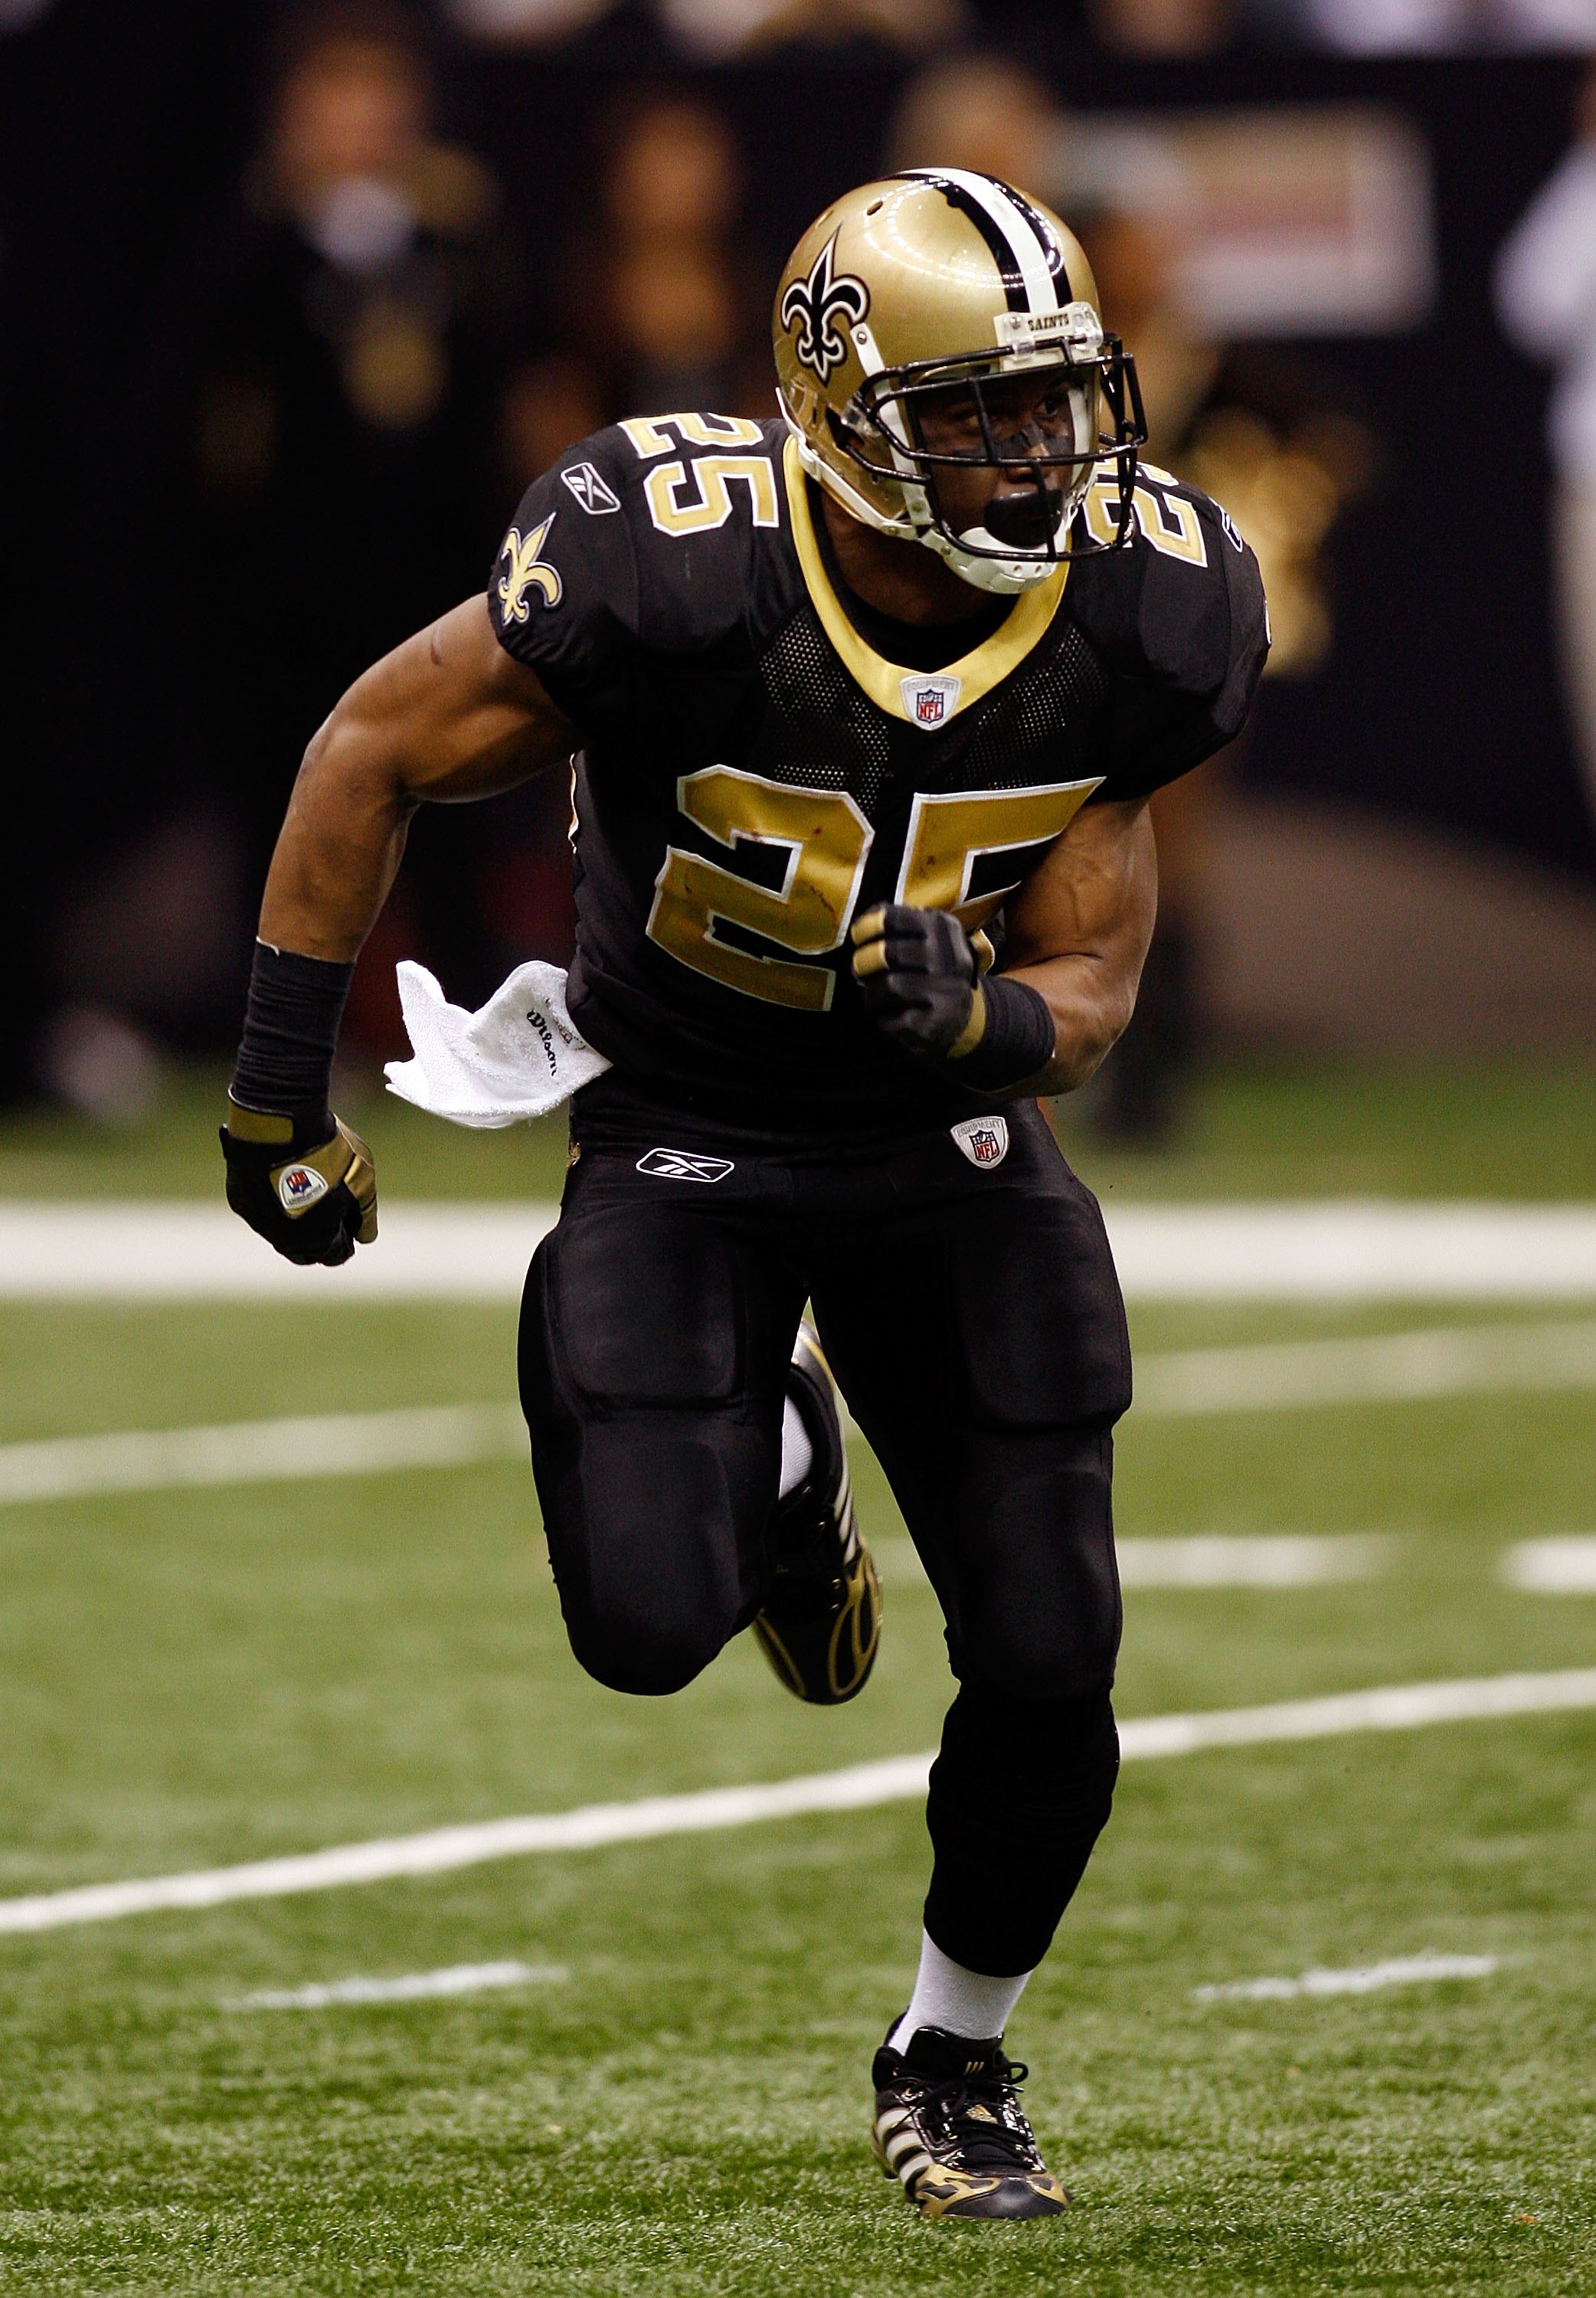 NEW ORLEANS - DECEMBER 07:  Reggie Bush #25 of the New Orleans Saints runs downfield against  the Atlanta Falcons on December 7, 2008 at the Superdome in New Orleans, Louisiana.  (Photo by Chris Graythen/Getty Images)